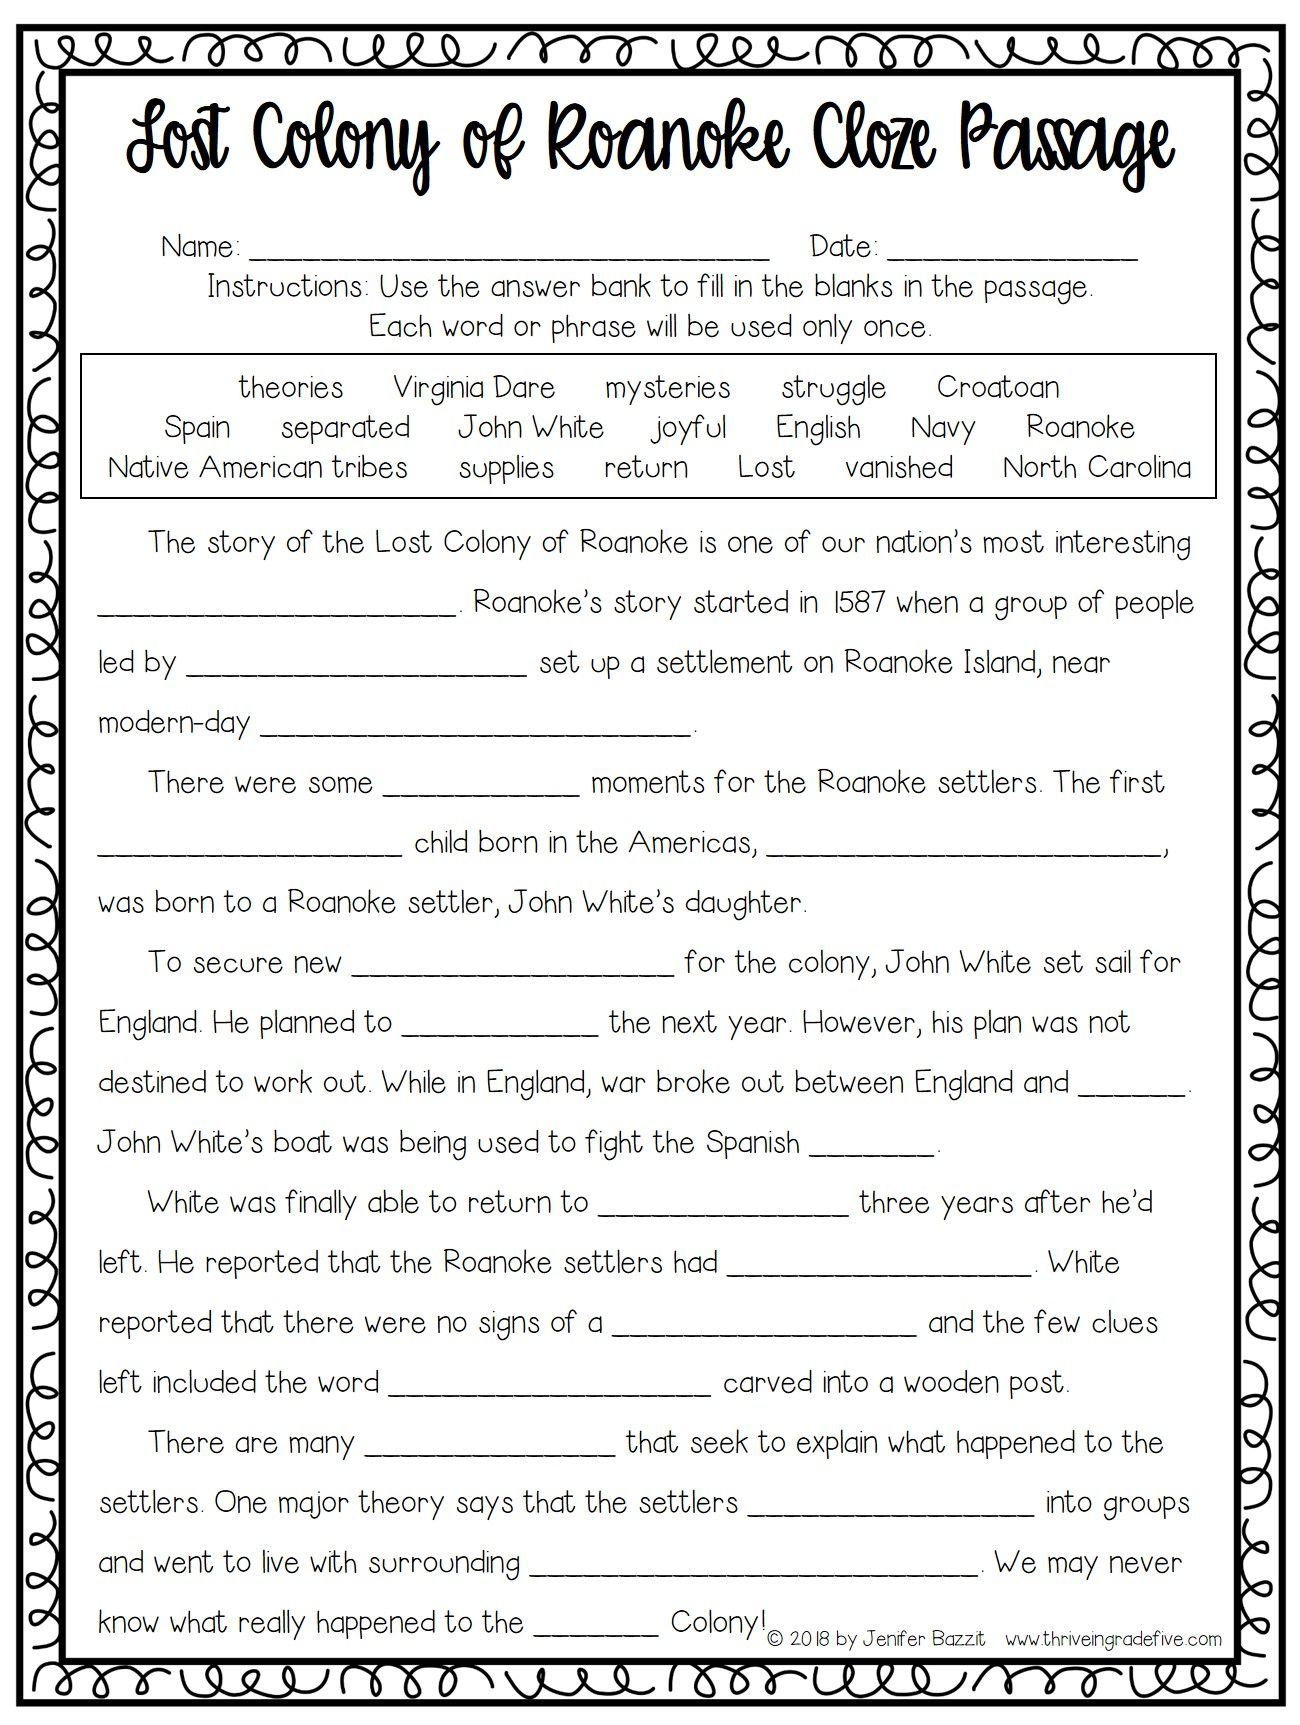 small resolution of Lost Colony of Roanoke activity - FREE!   History worksheets